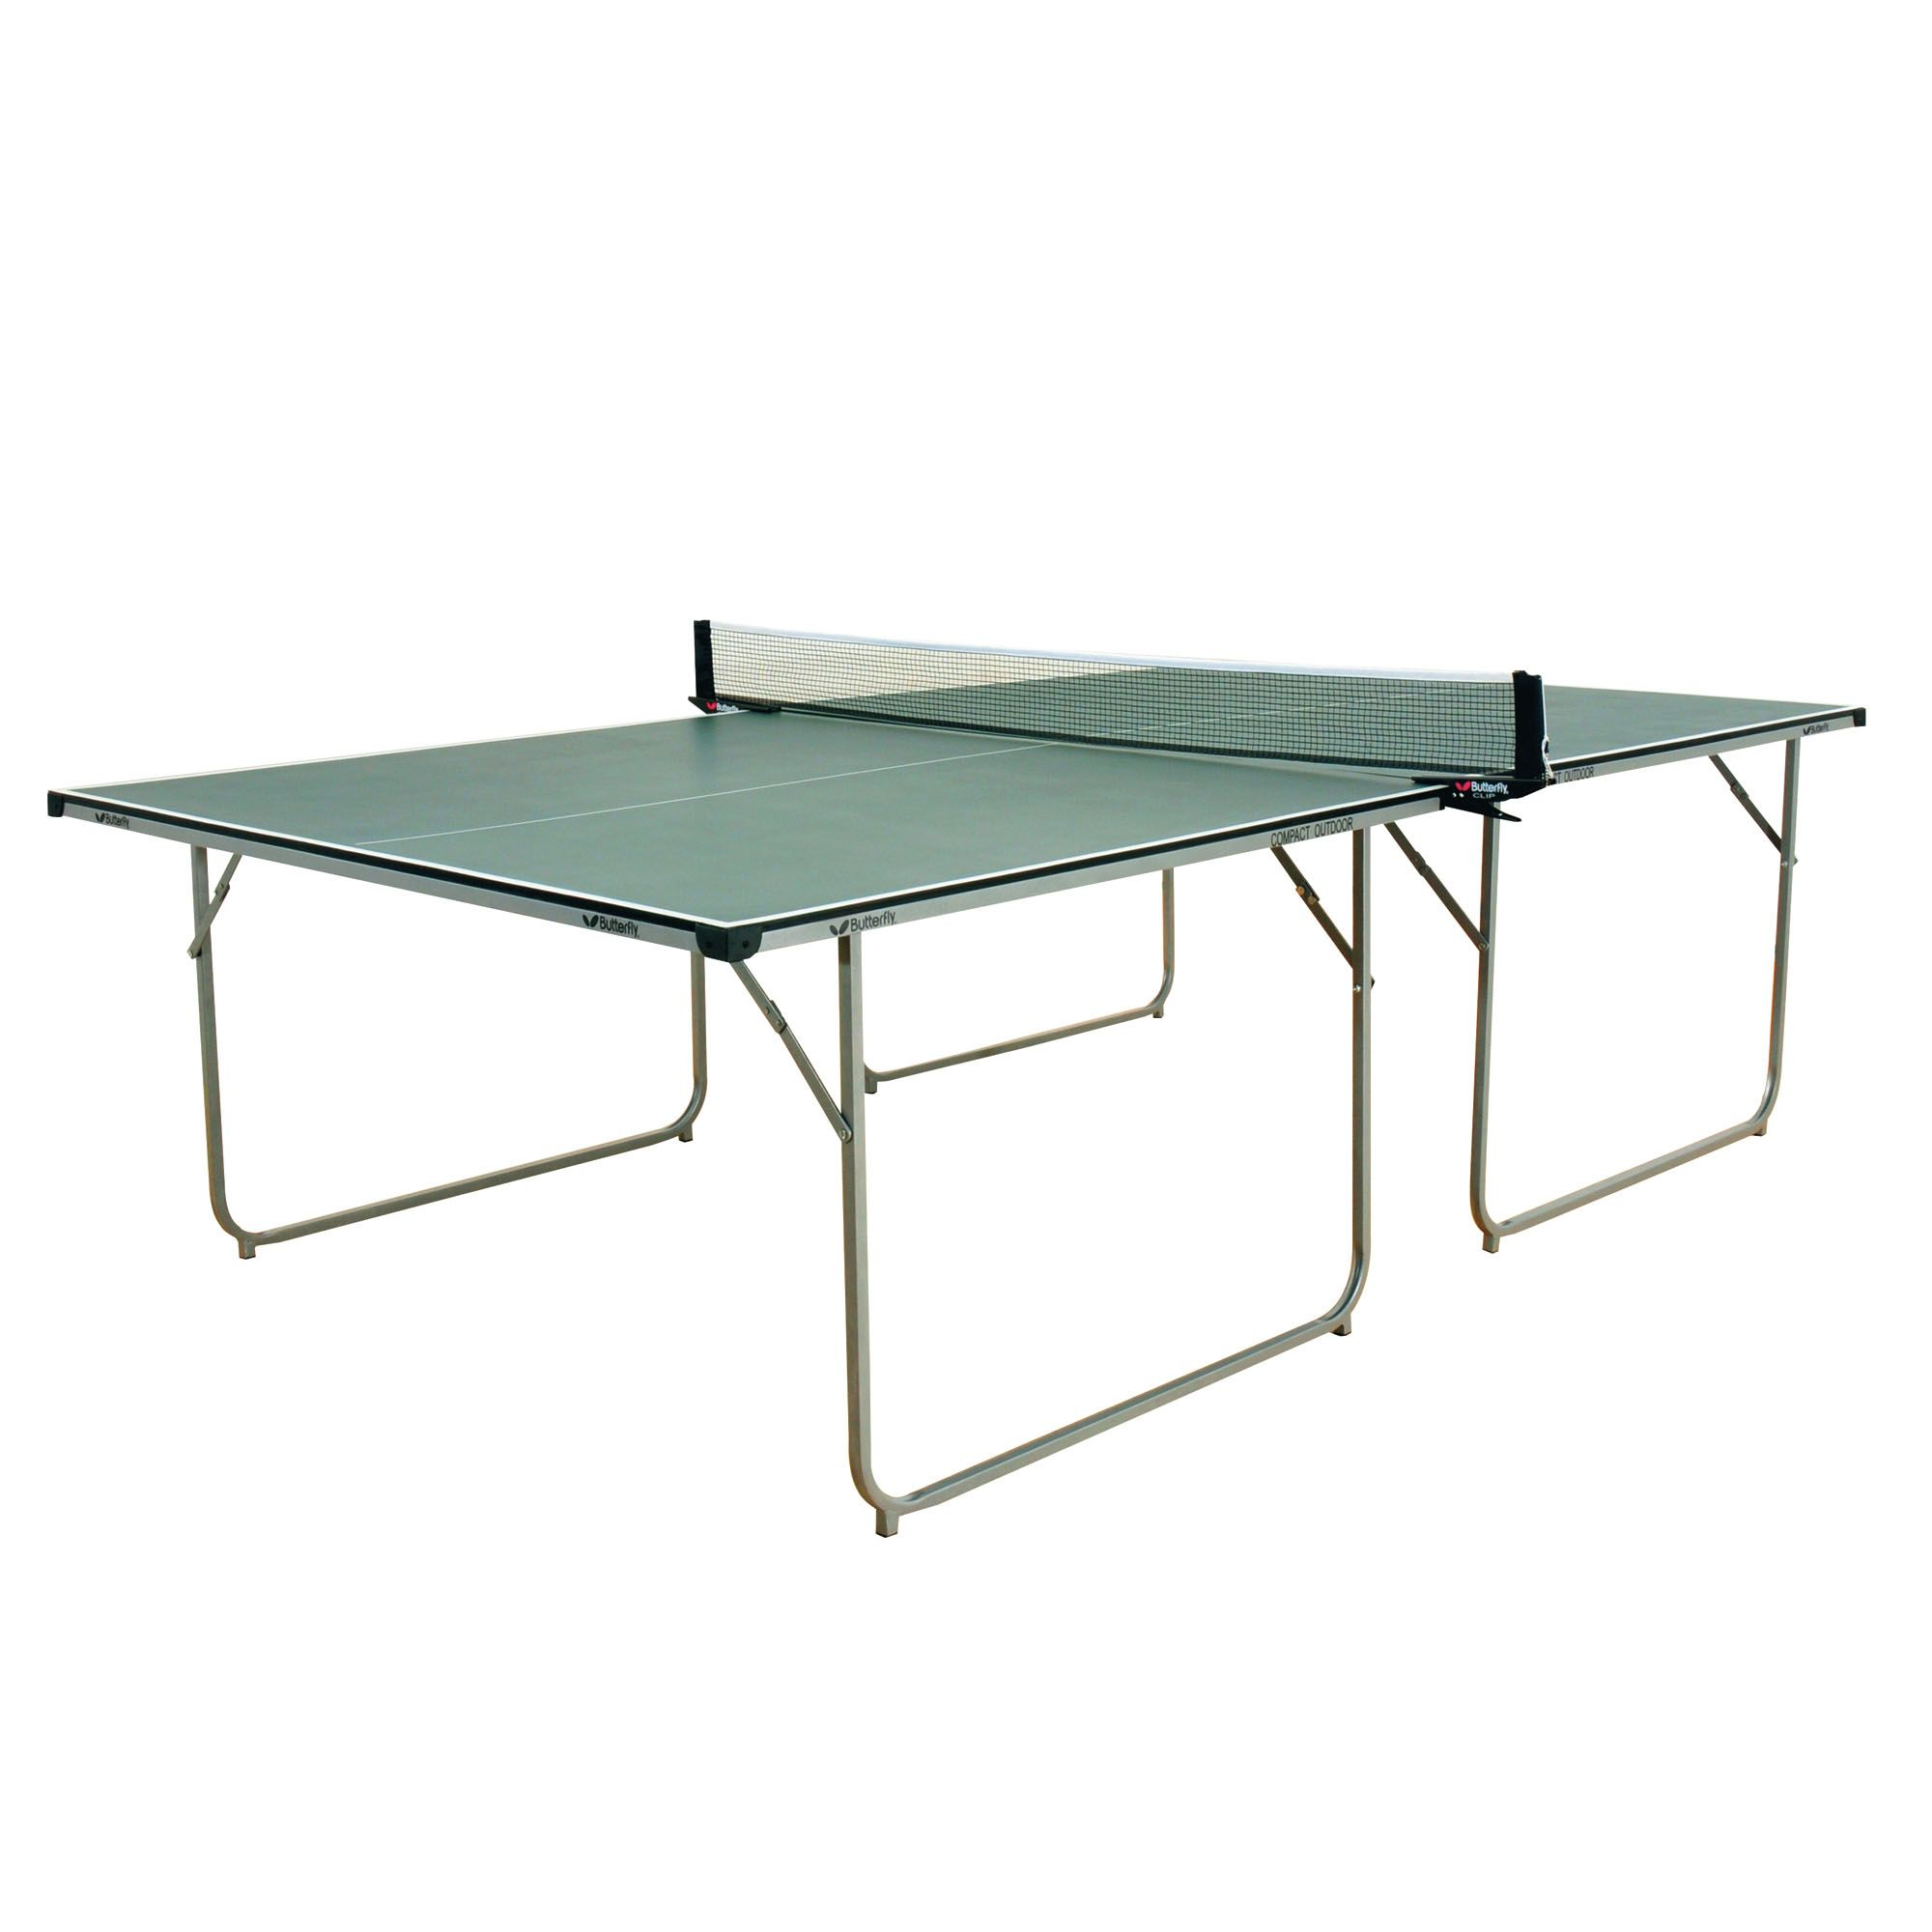 Butterfly compact outdoor table tennis table for Table tennis